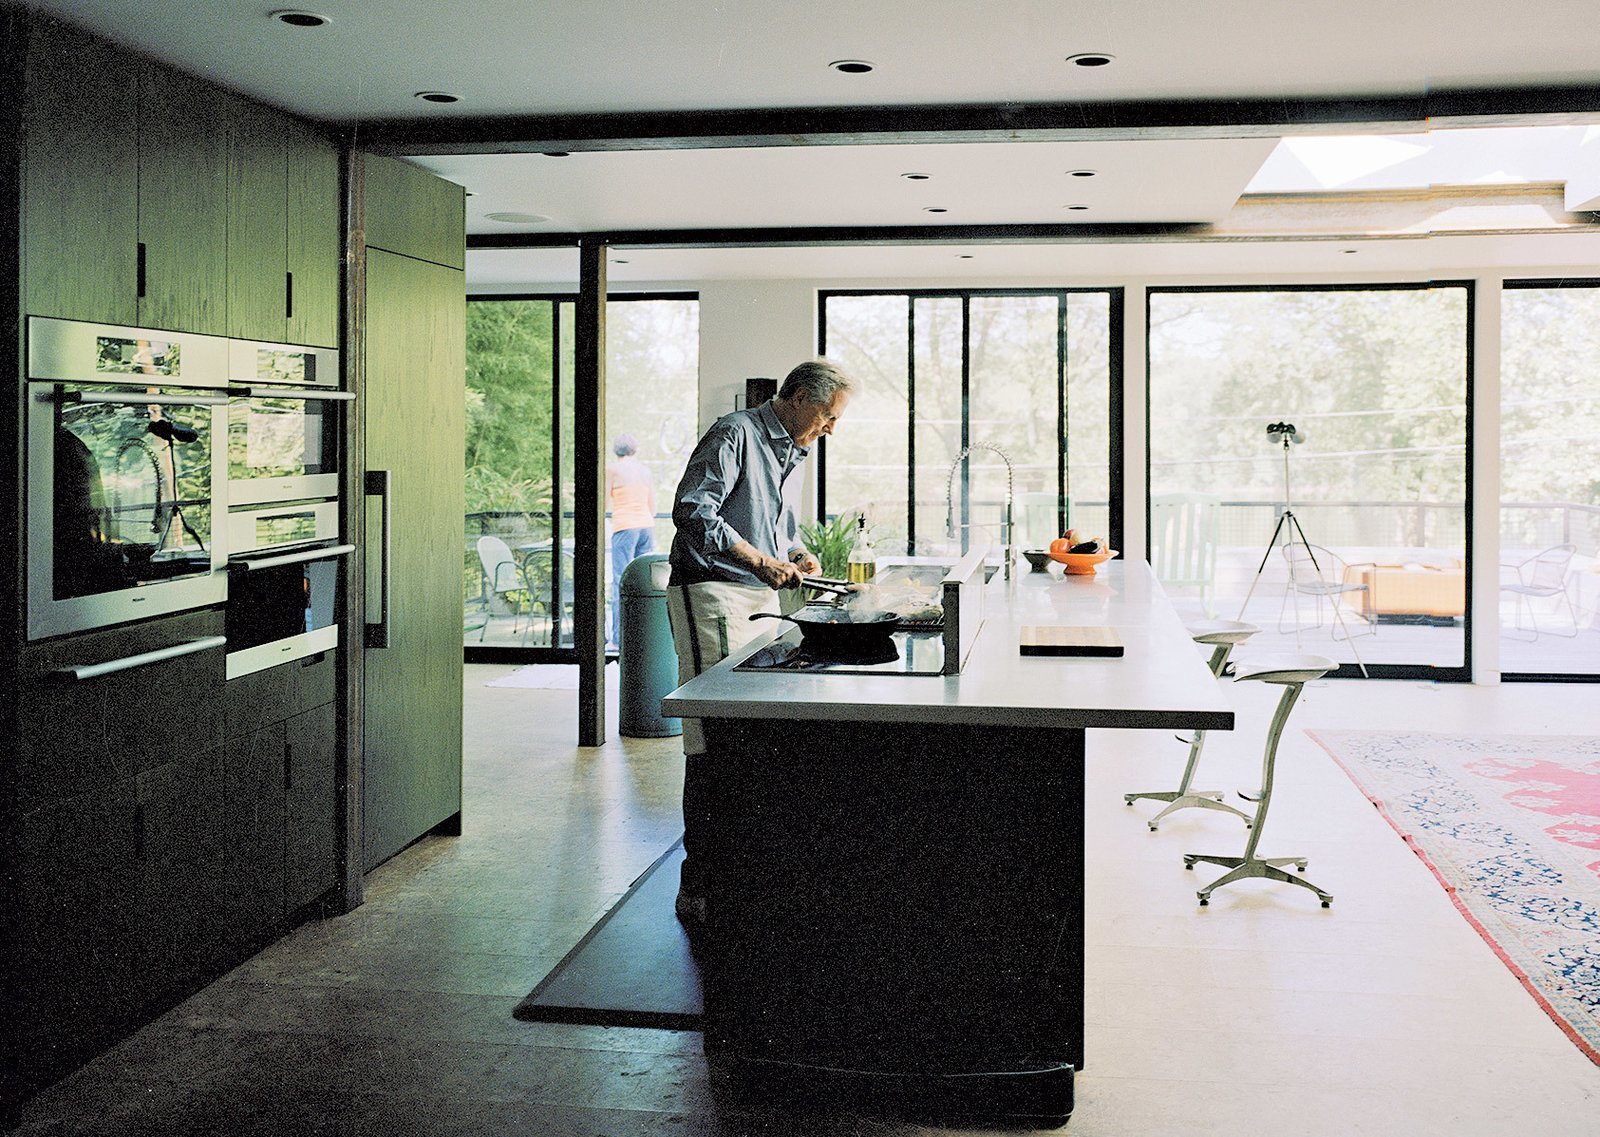 Kitchen, Cooktops, and Wall Oven The custom kitchen boasts a suite of appliances by Miele and custom sliding doors and windows by Arcadia Architectural Series that open to views of the Delaware River, just across the street.  Photo 5 of 12 in A Shipping Container Home in Pennsylvania Embraces Its Rugged Industrial Origins